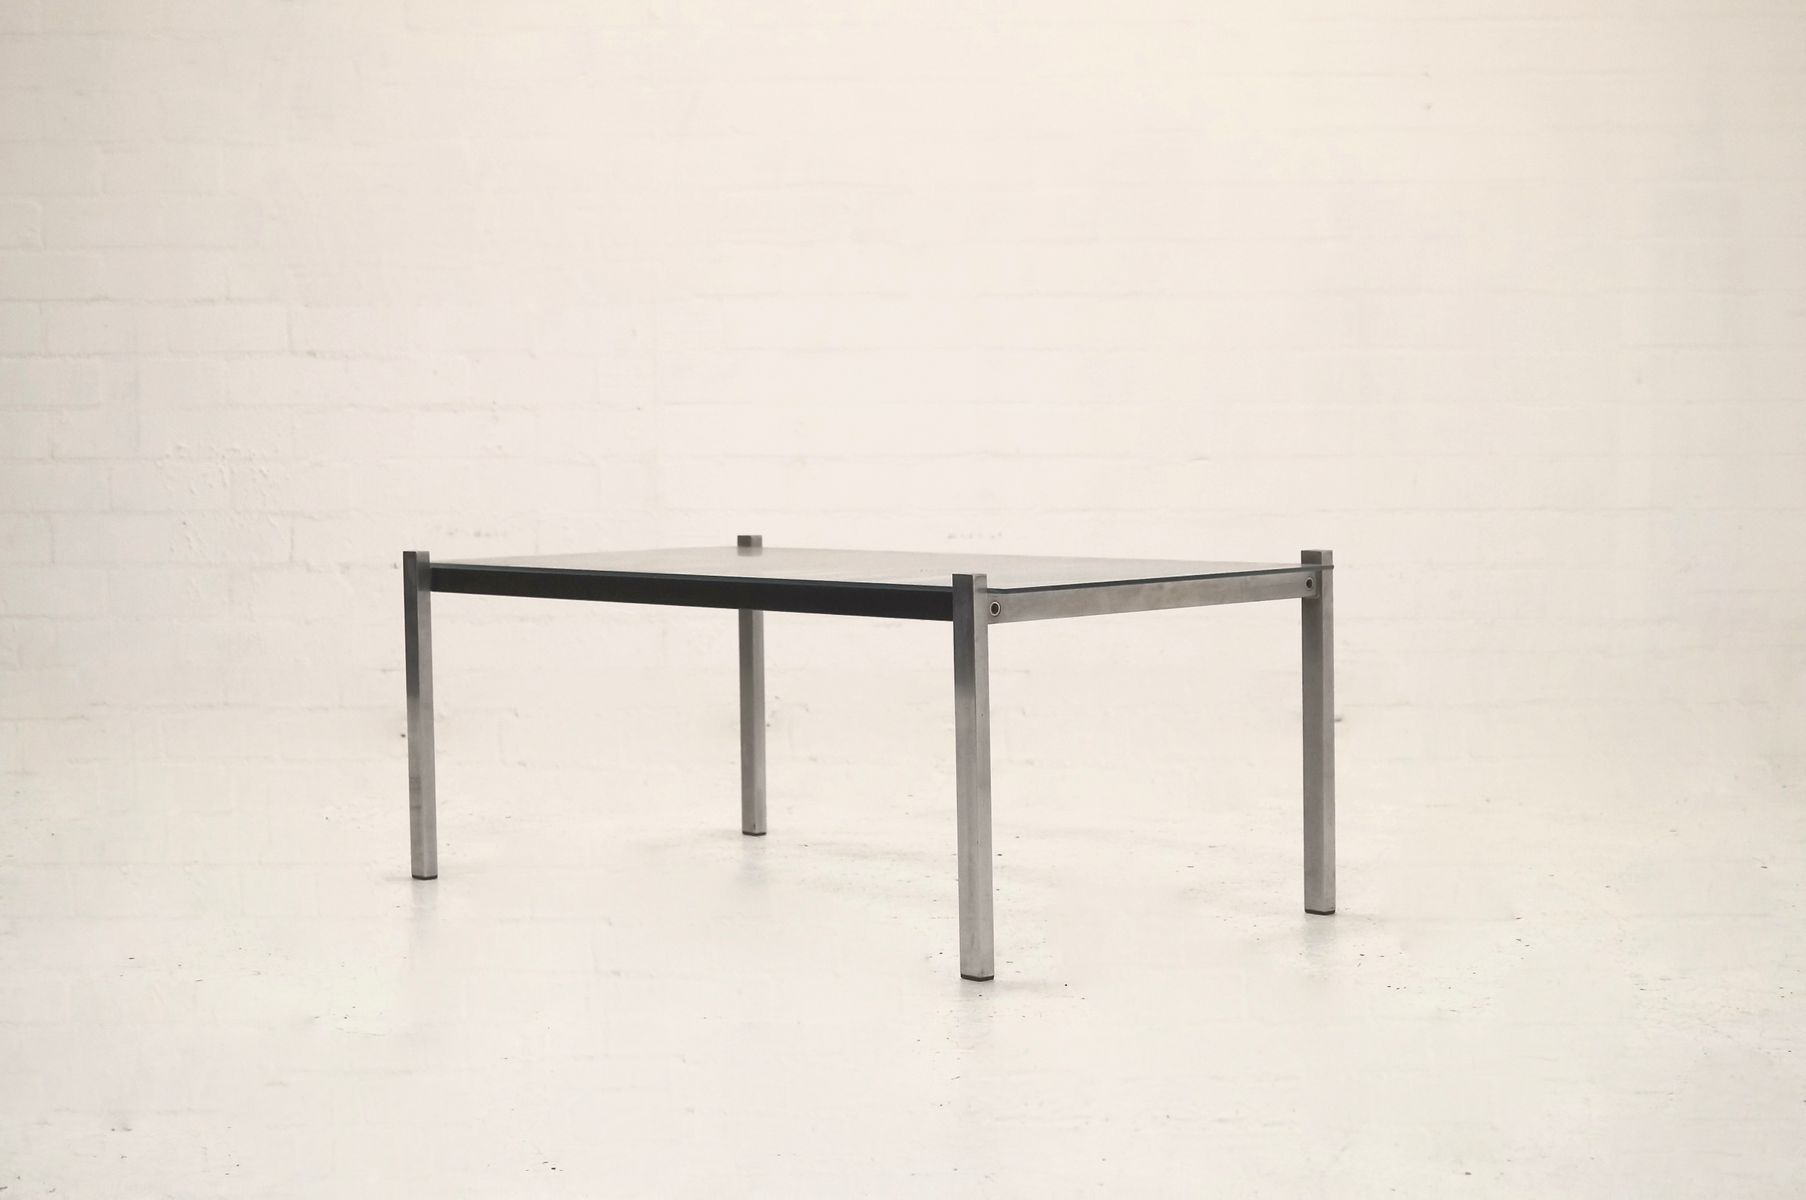 Mid Century Modern Metal And Glass Coffee Table, 1960s